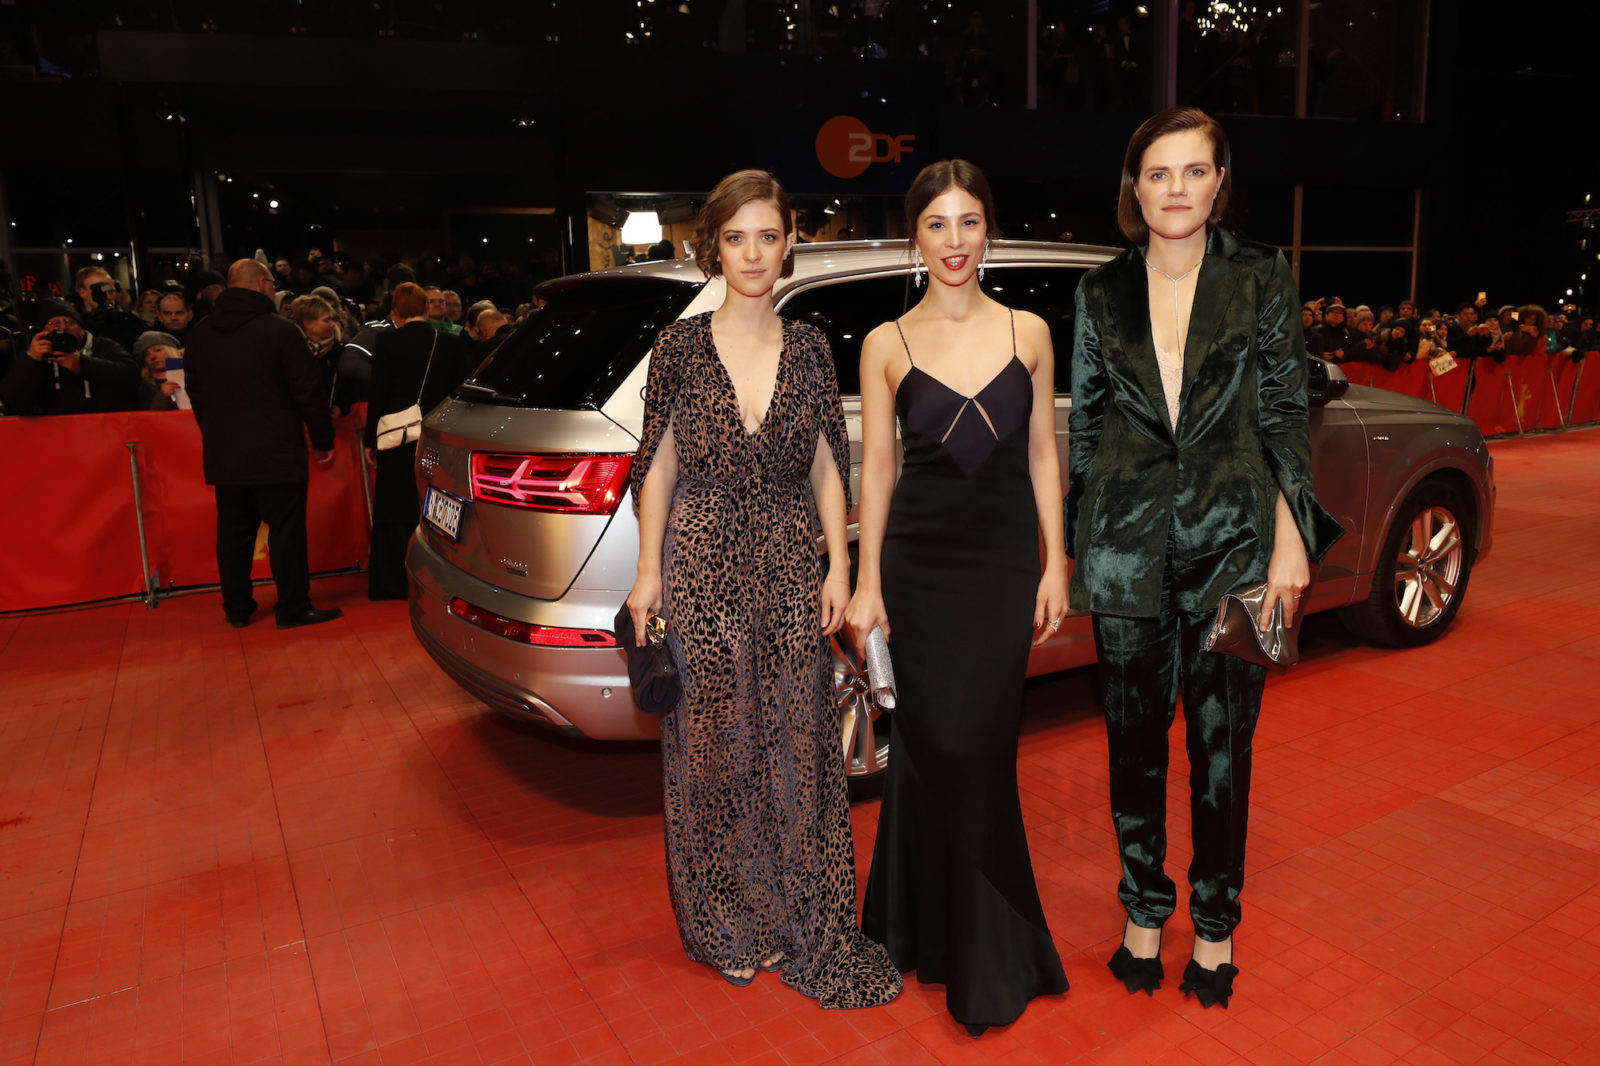 Berlinale 2016 Roter Teppich Berlinale Roter Teppich The World S Best Photos Of